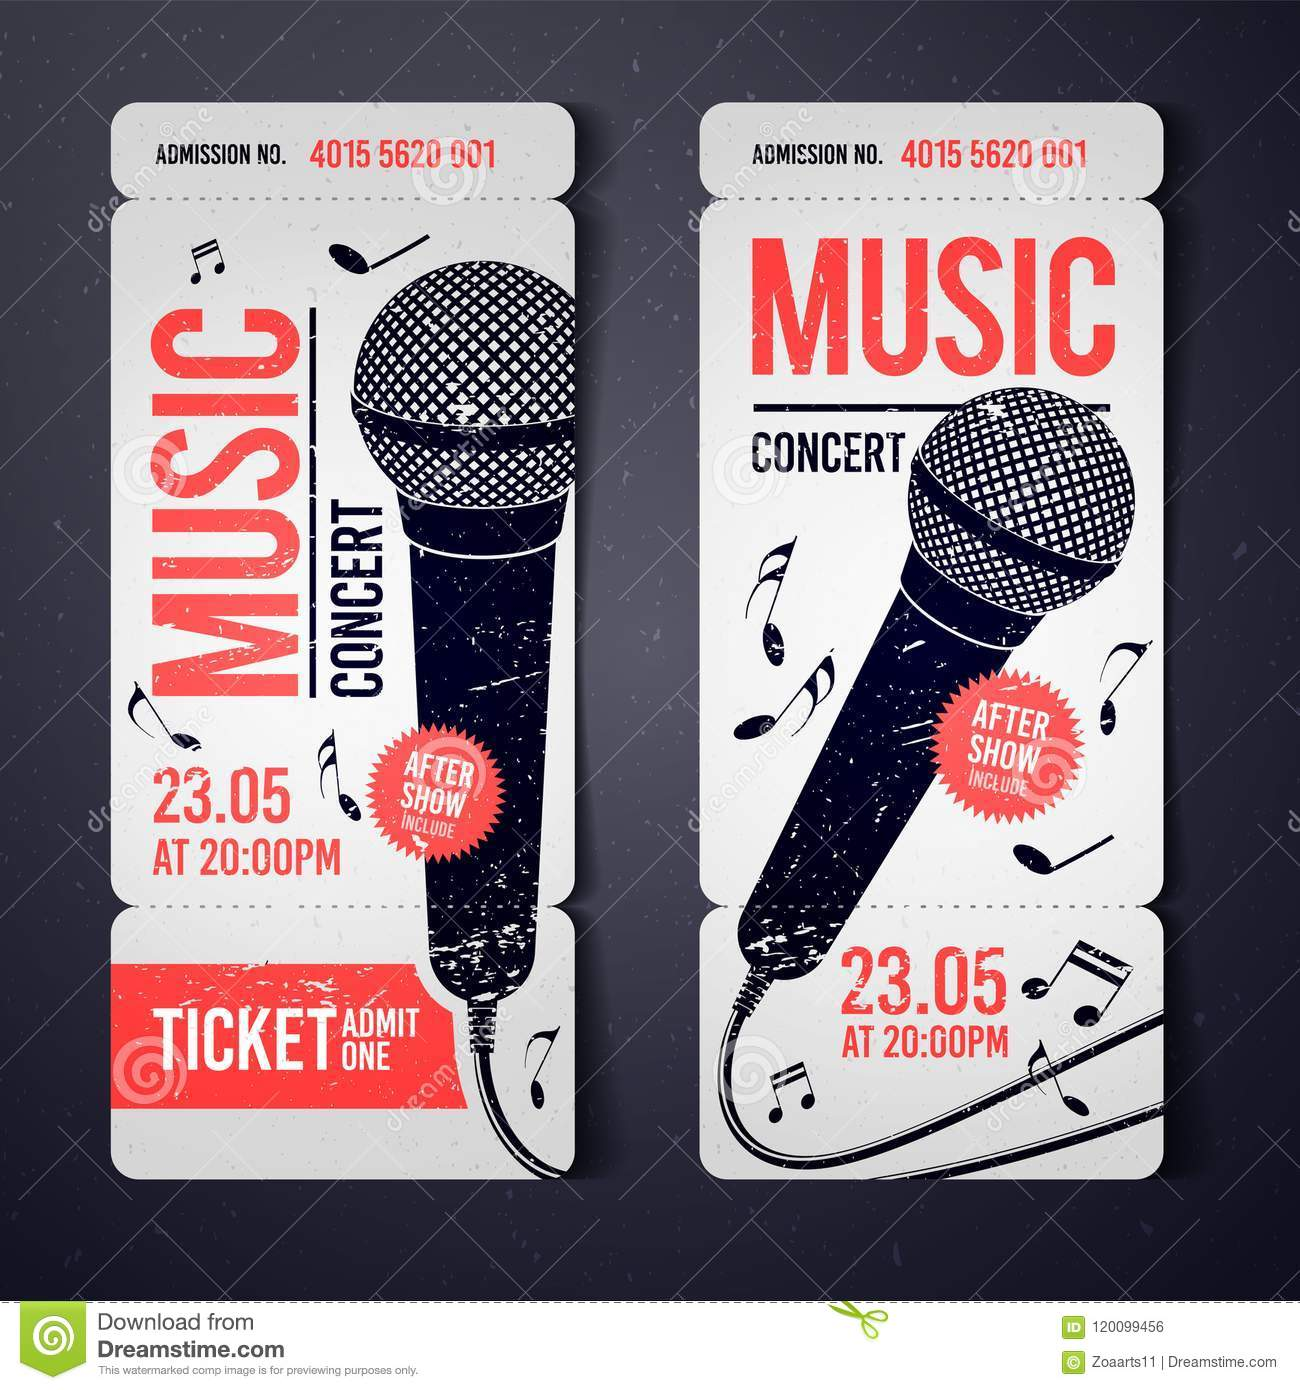 vector illustration music concert event ticket design template with